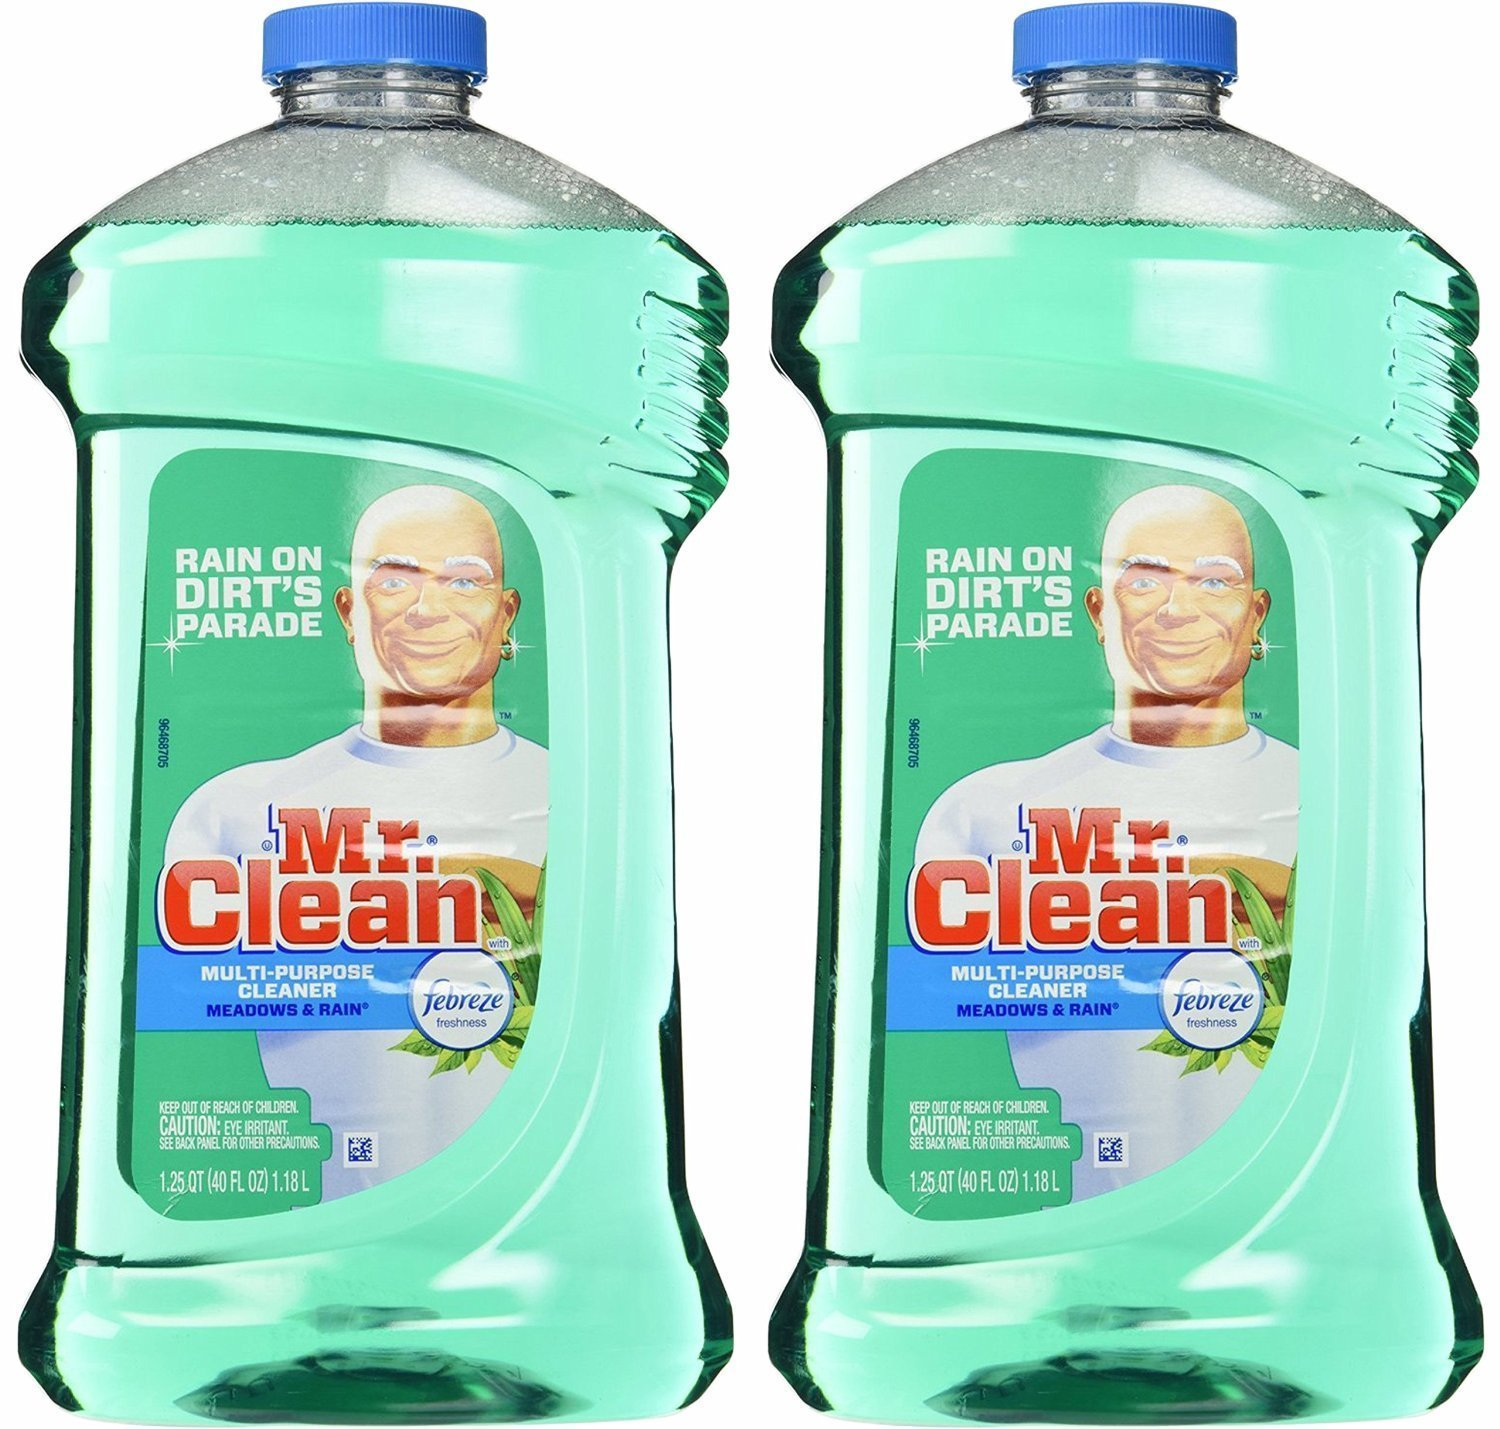 Mr. Clean with Febreze Freshness Meadows & Rain Multi-Surface Cleaner 40 oz - 2 Pack